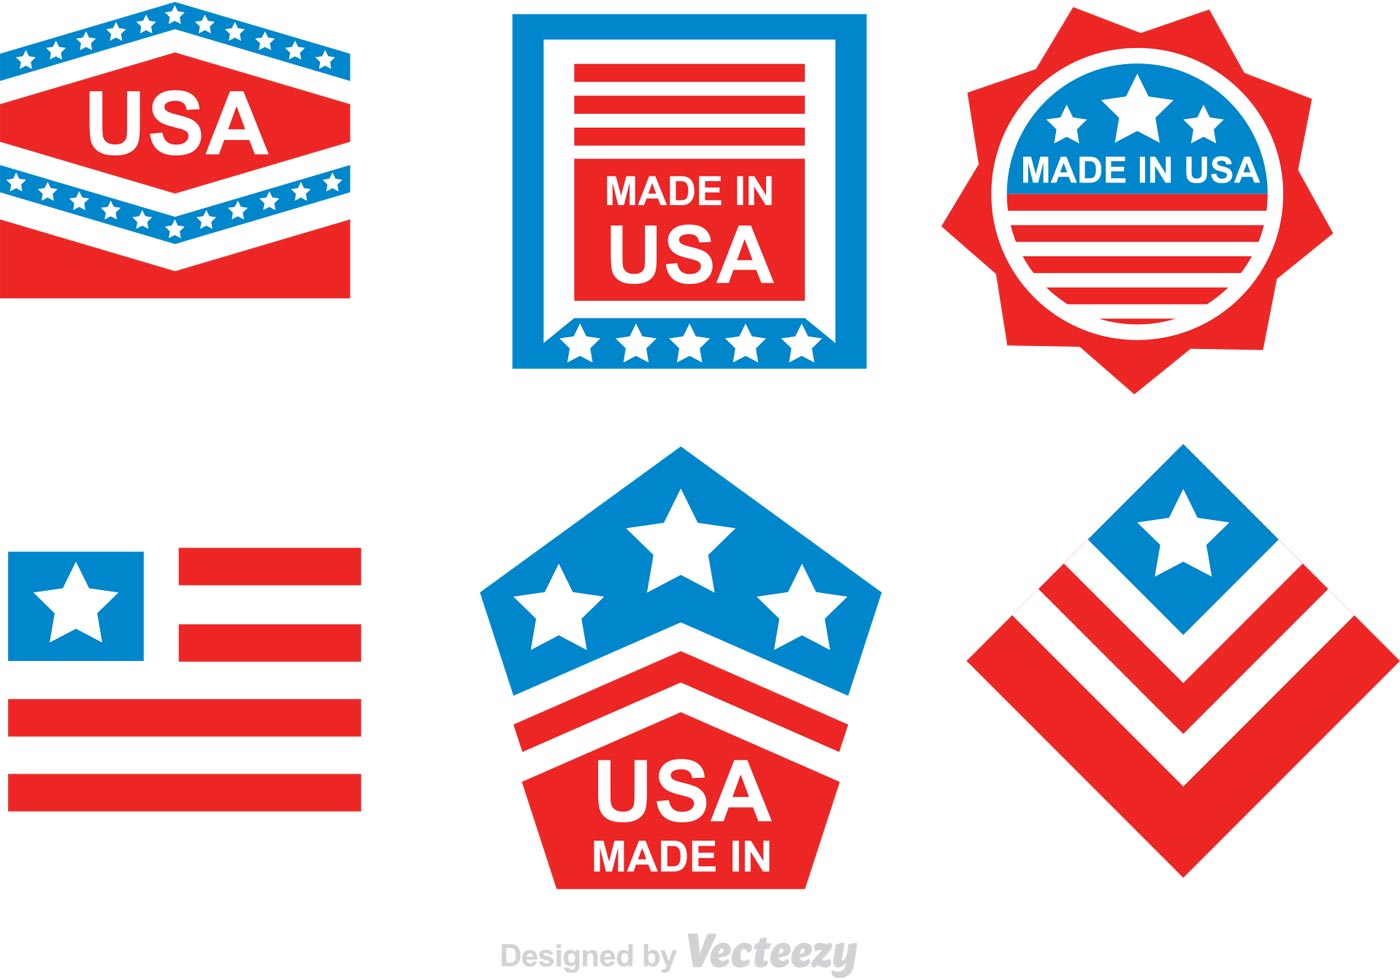 made in usa vectors download free vector art stock graphics images. Black Bedroom Furniture Sets. Home Design Ideas